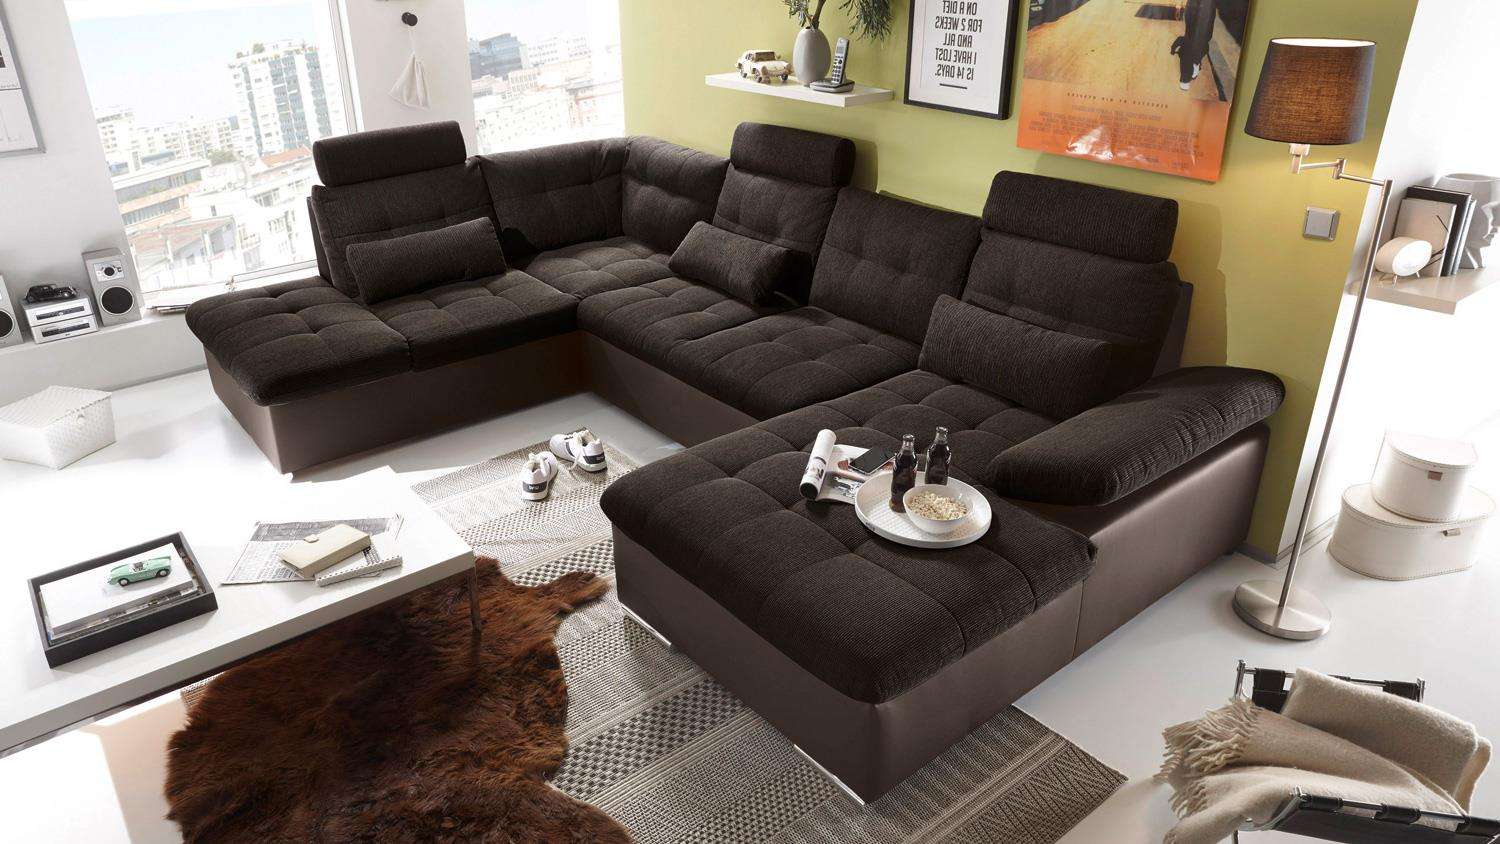 wohnlandschaft links jakarta sofa braun hellbraun funktion. Black Bedroom Furniture Sets. Home Design Ideas